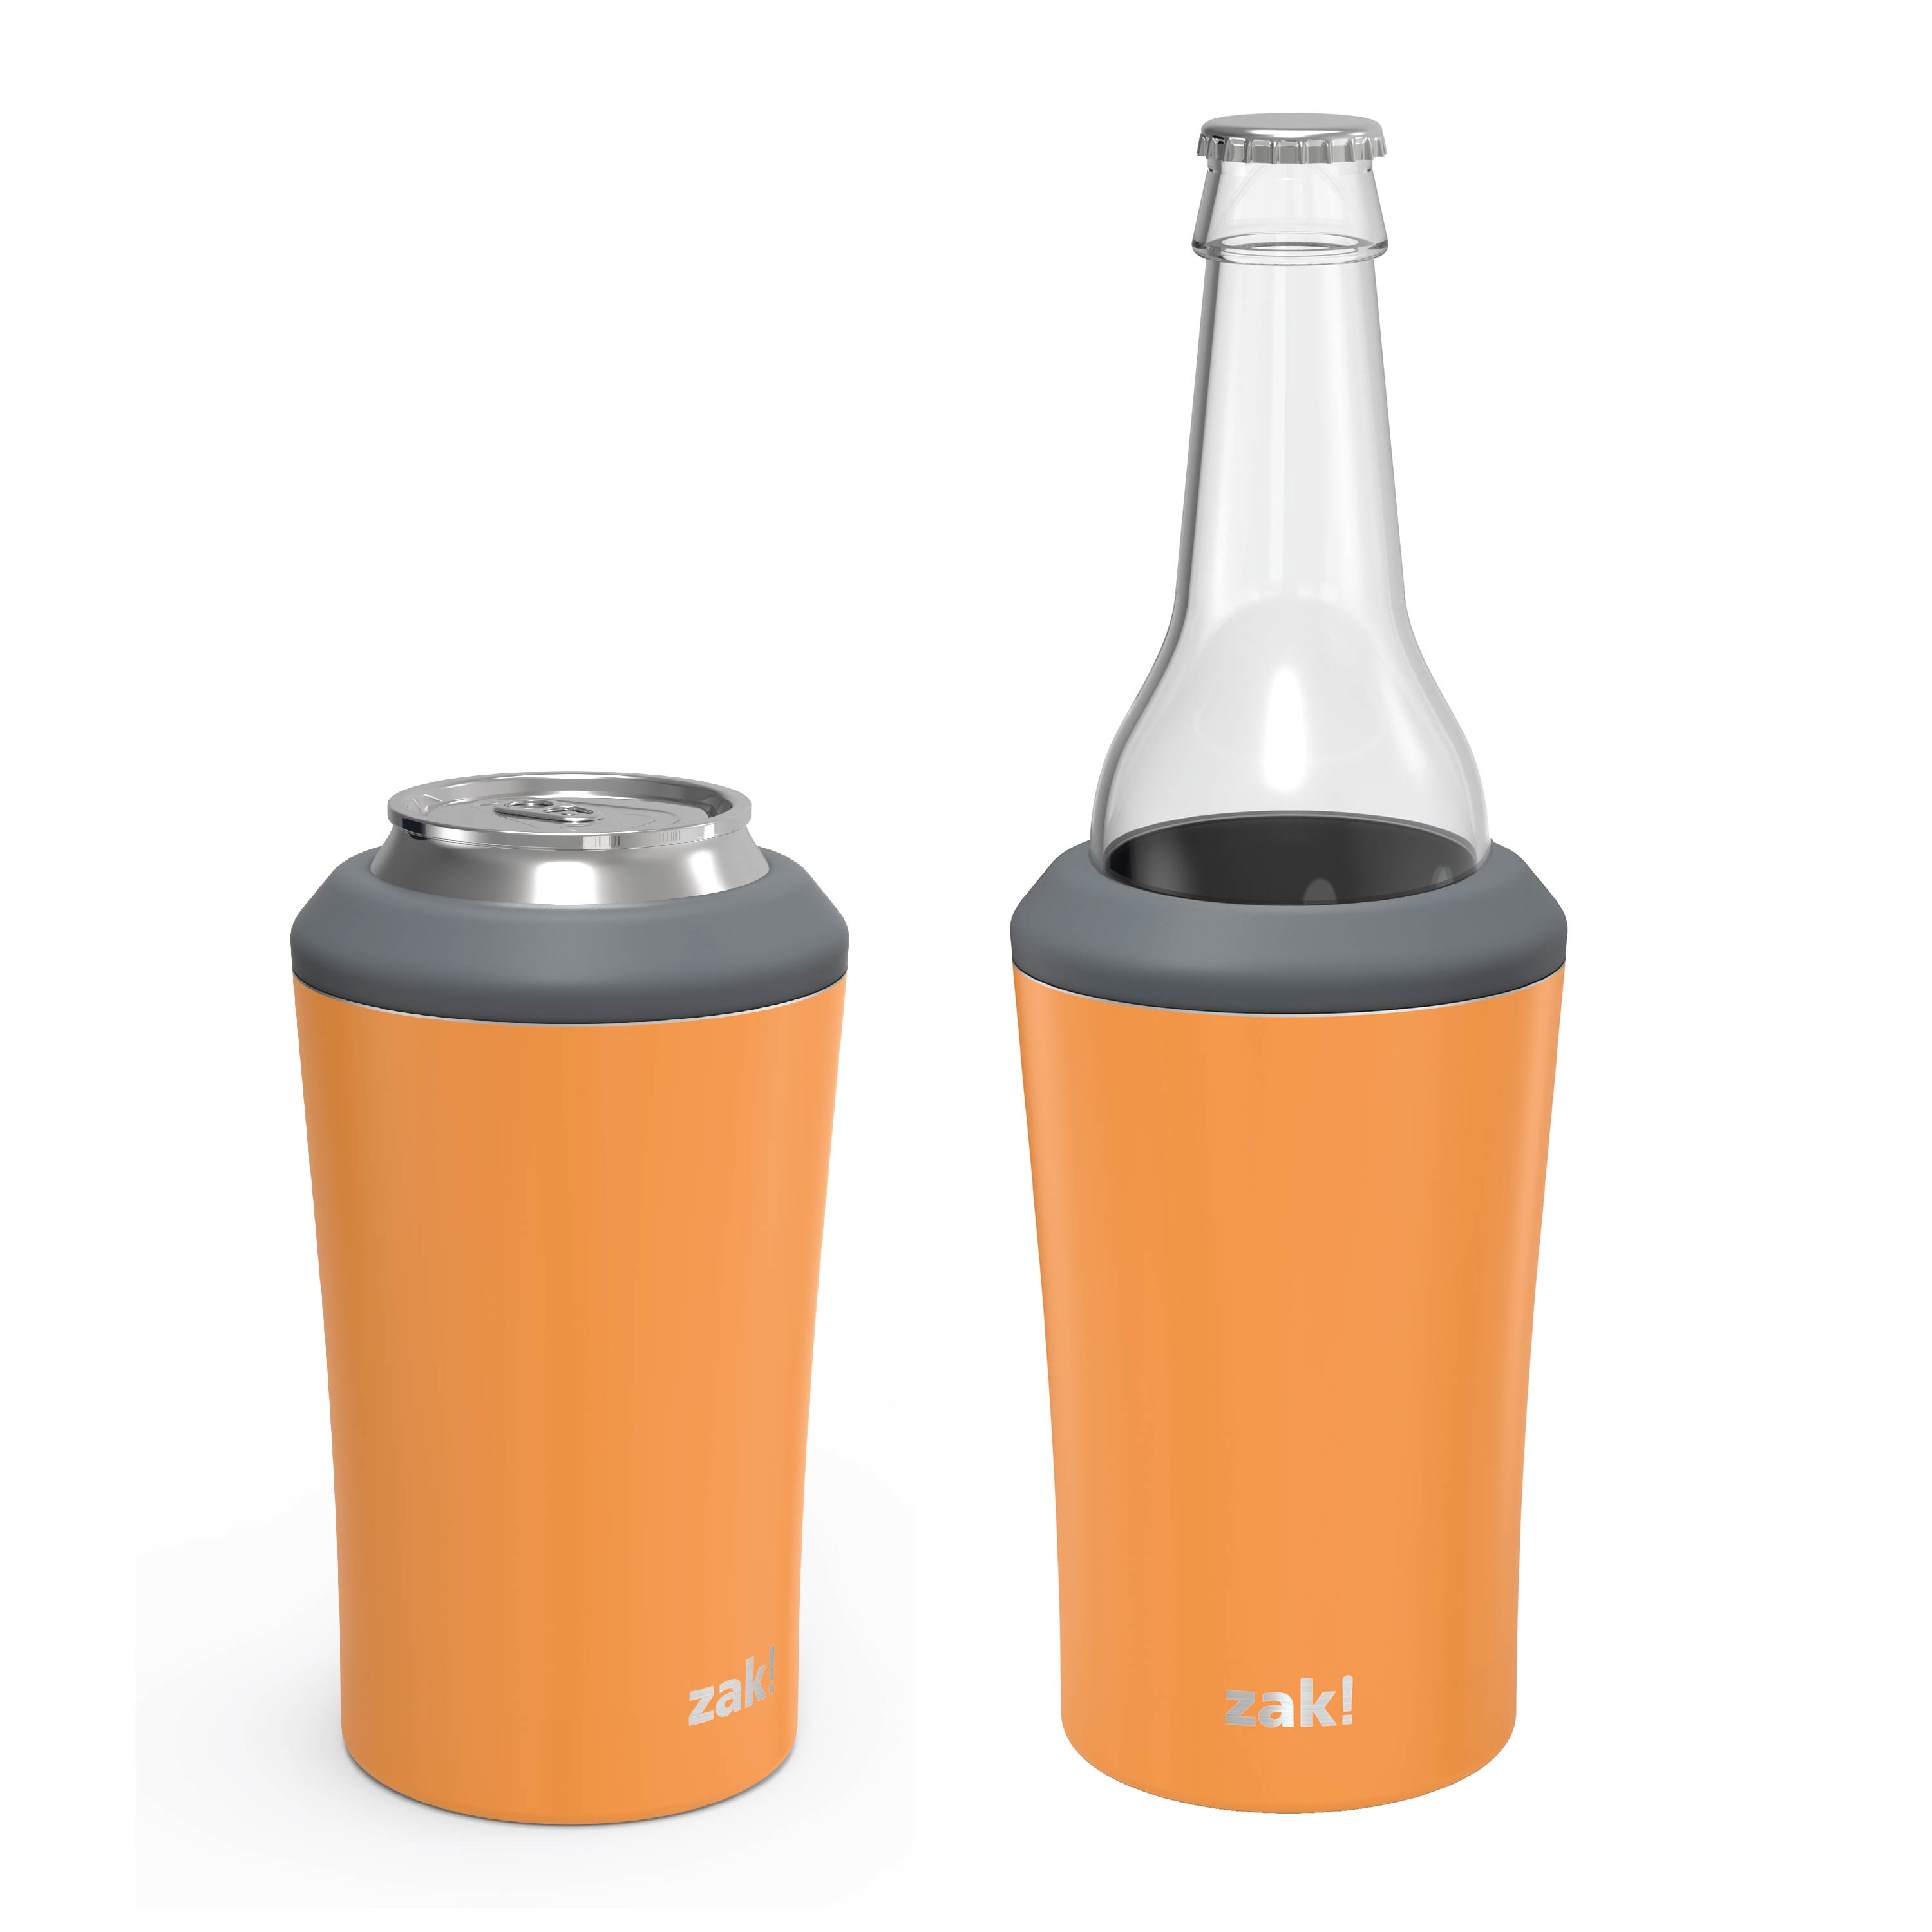 Zak Hydration 12 ounce Double Wall Stainless Steel Can and Bottle Cooler with Vacuum Insulation, Tangerine slideshow image 6